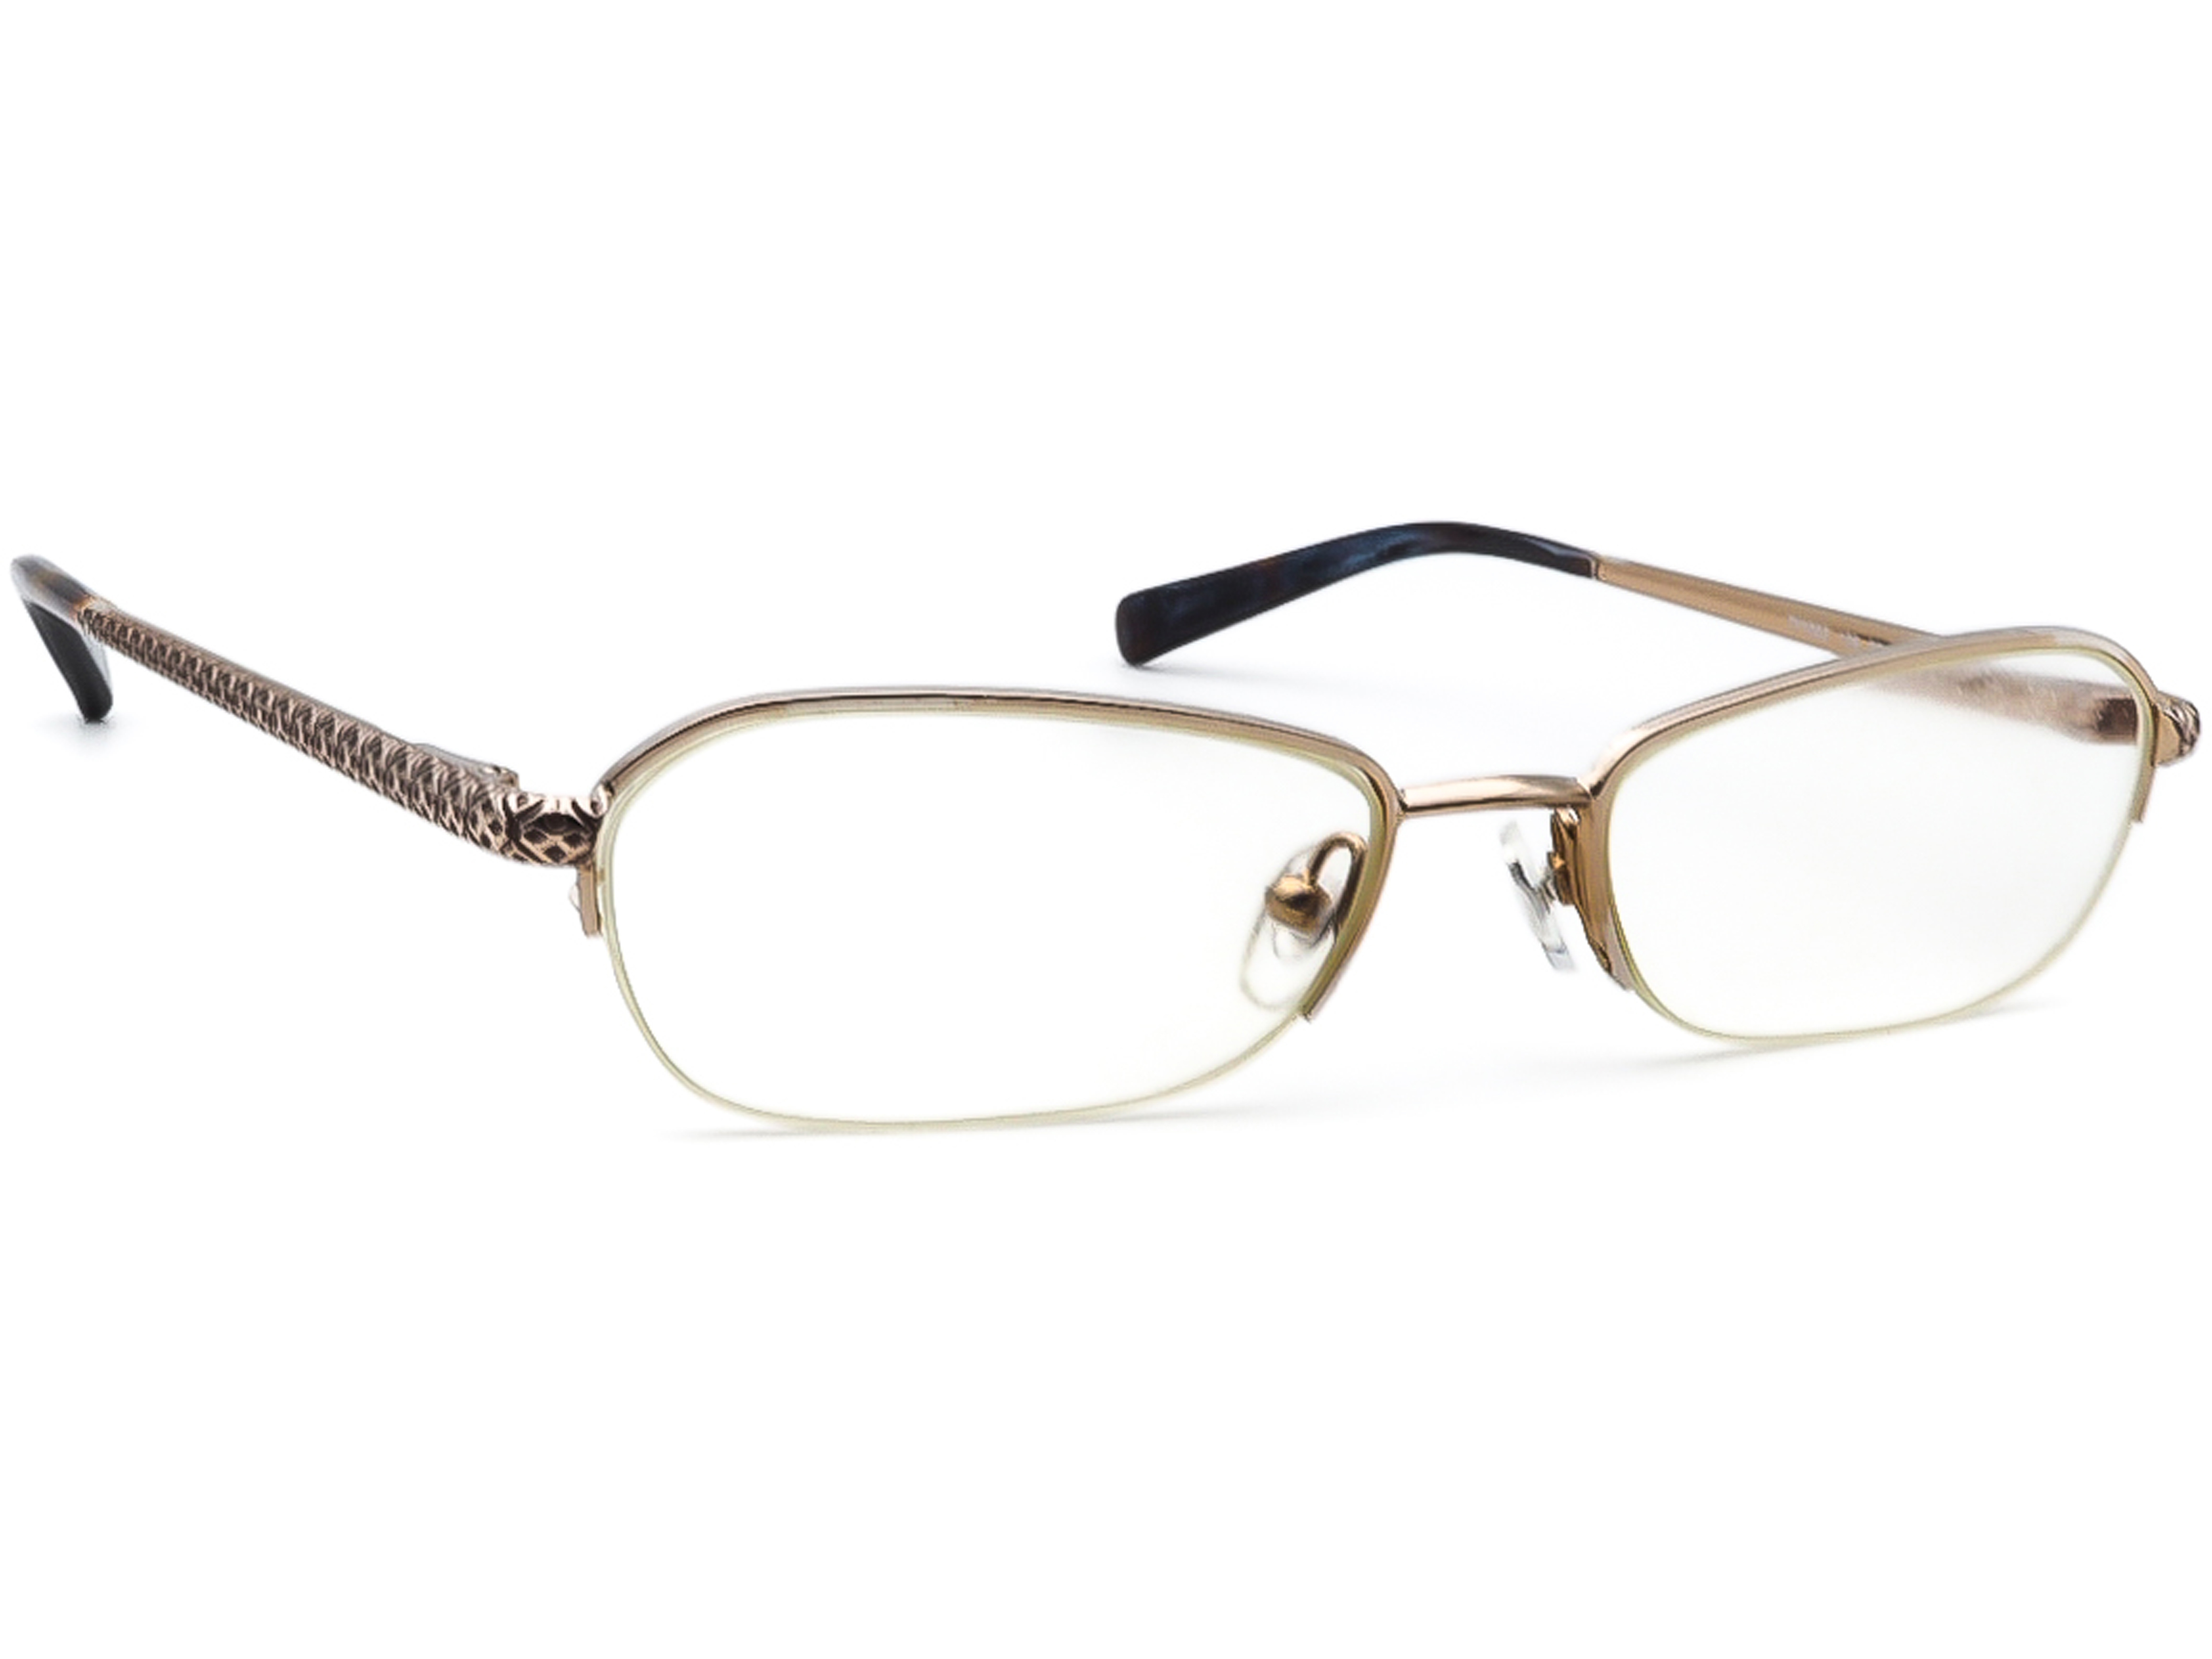 Tory Burch TY1003 106 Eyeglasses